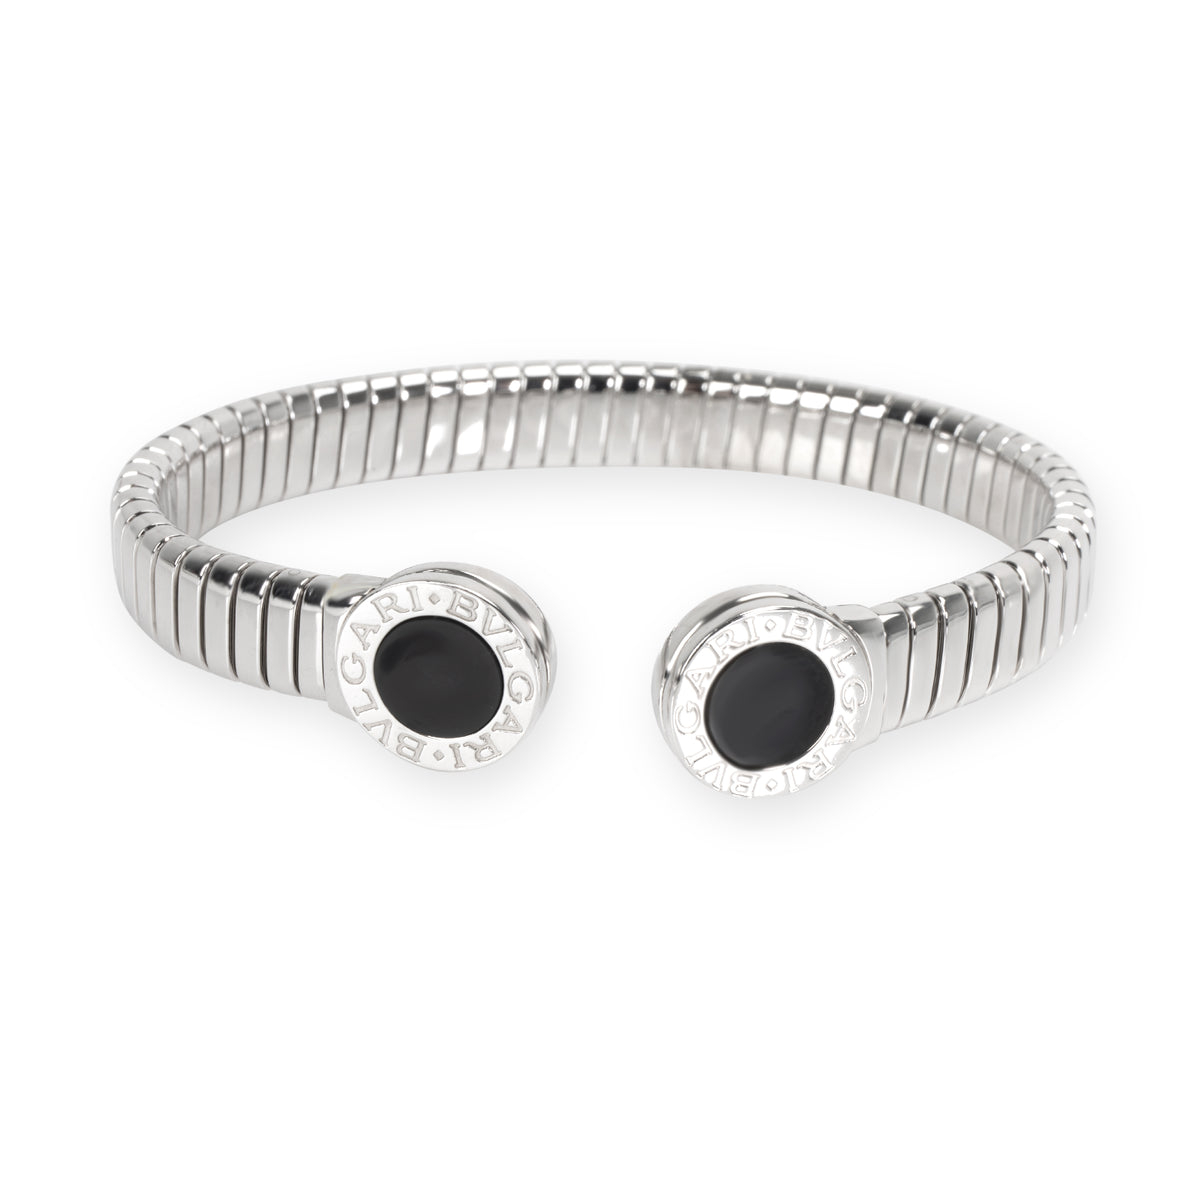 Bulgari Tubogas Onyx Cuff Bangle in Stainless Steel